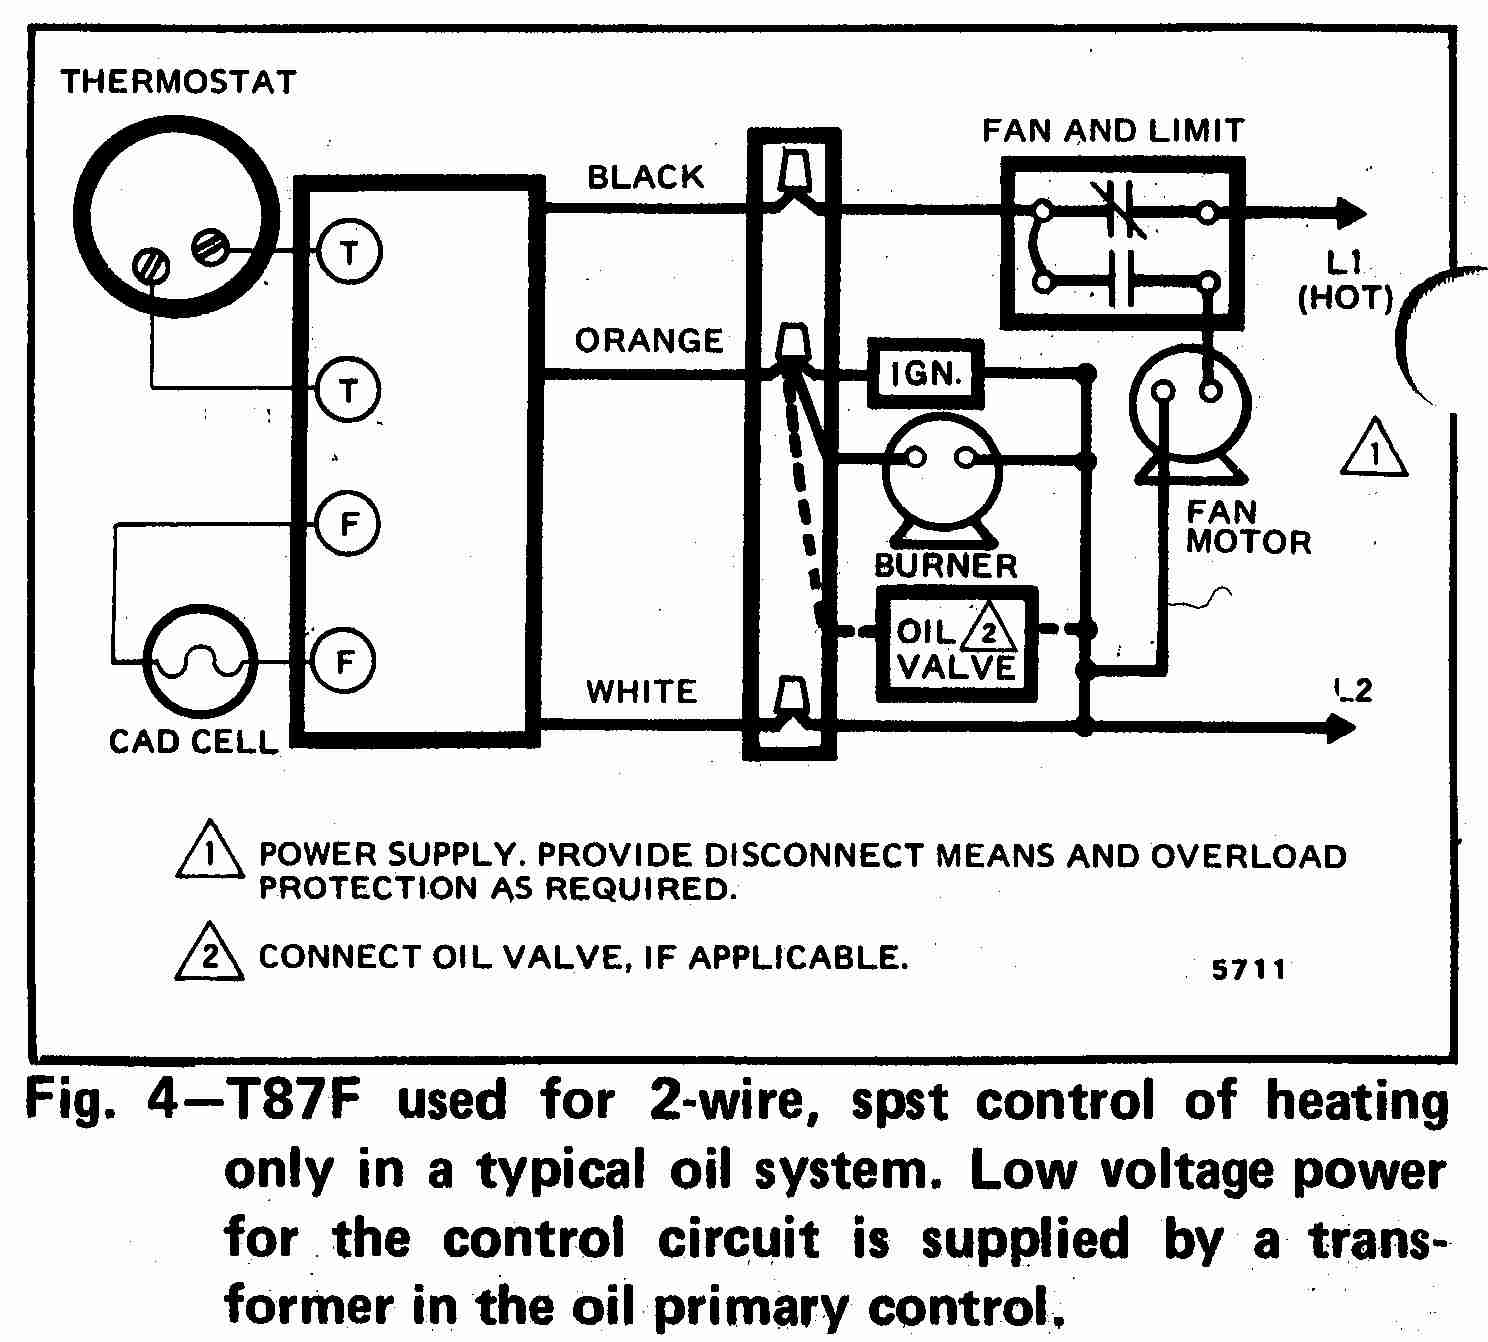 TT_T87F_0002_2W_DJF room thermostat wiring diagrams for hvac systems Coleman Mach RV Comfort Thermostat at creativeand.co